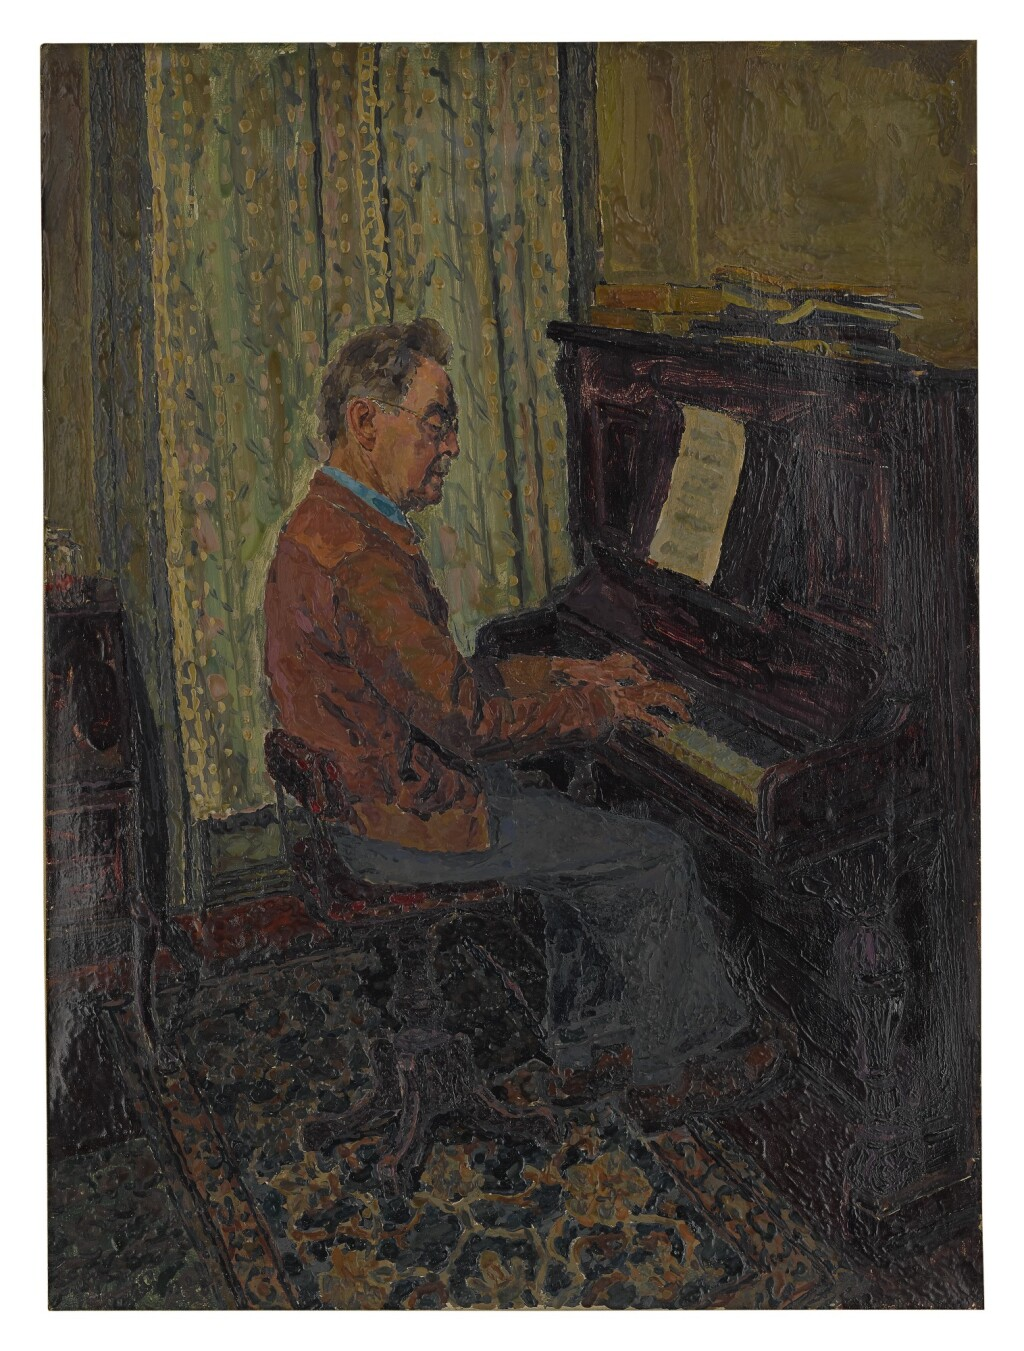 HERMAN ROSE | MAN AT THE PIANO AND STILL LIFE WITH CHILD'S TOYS: A DOUBLE-SIDED WORK